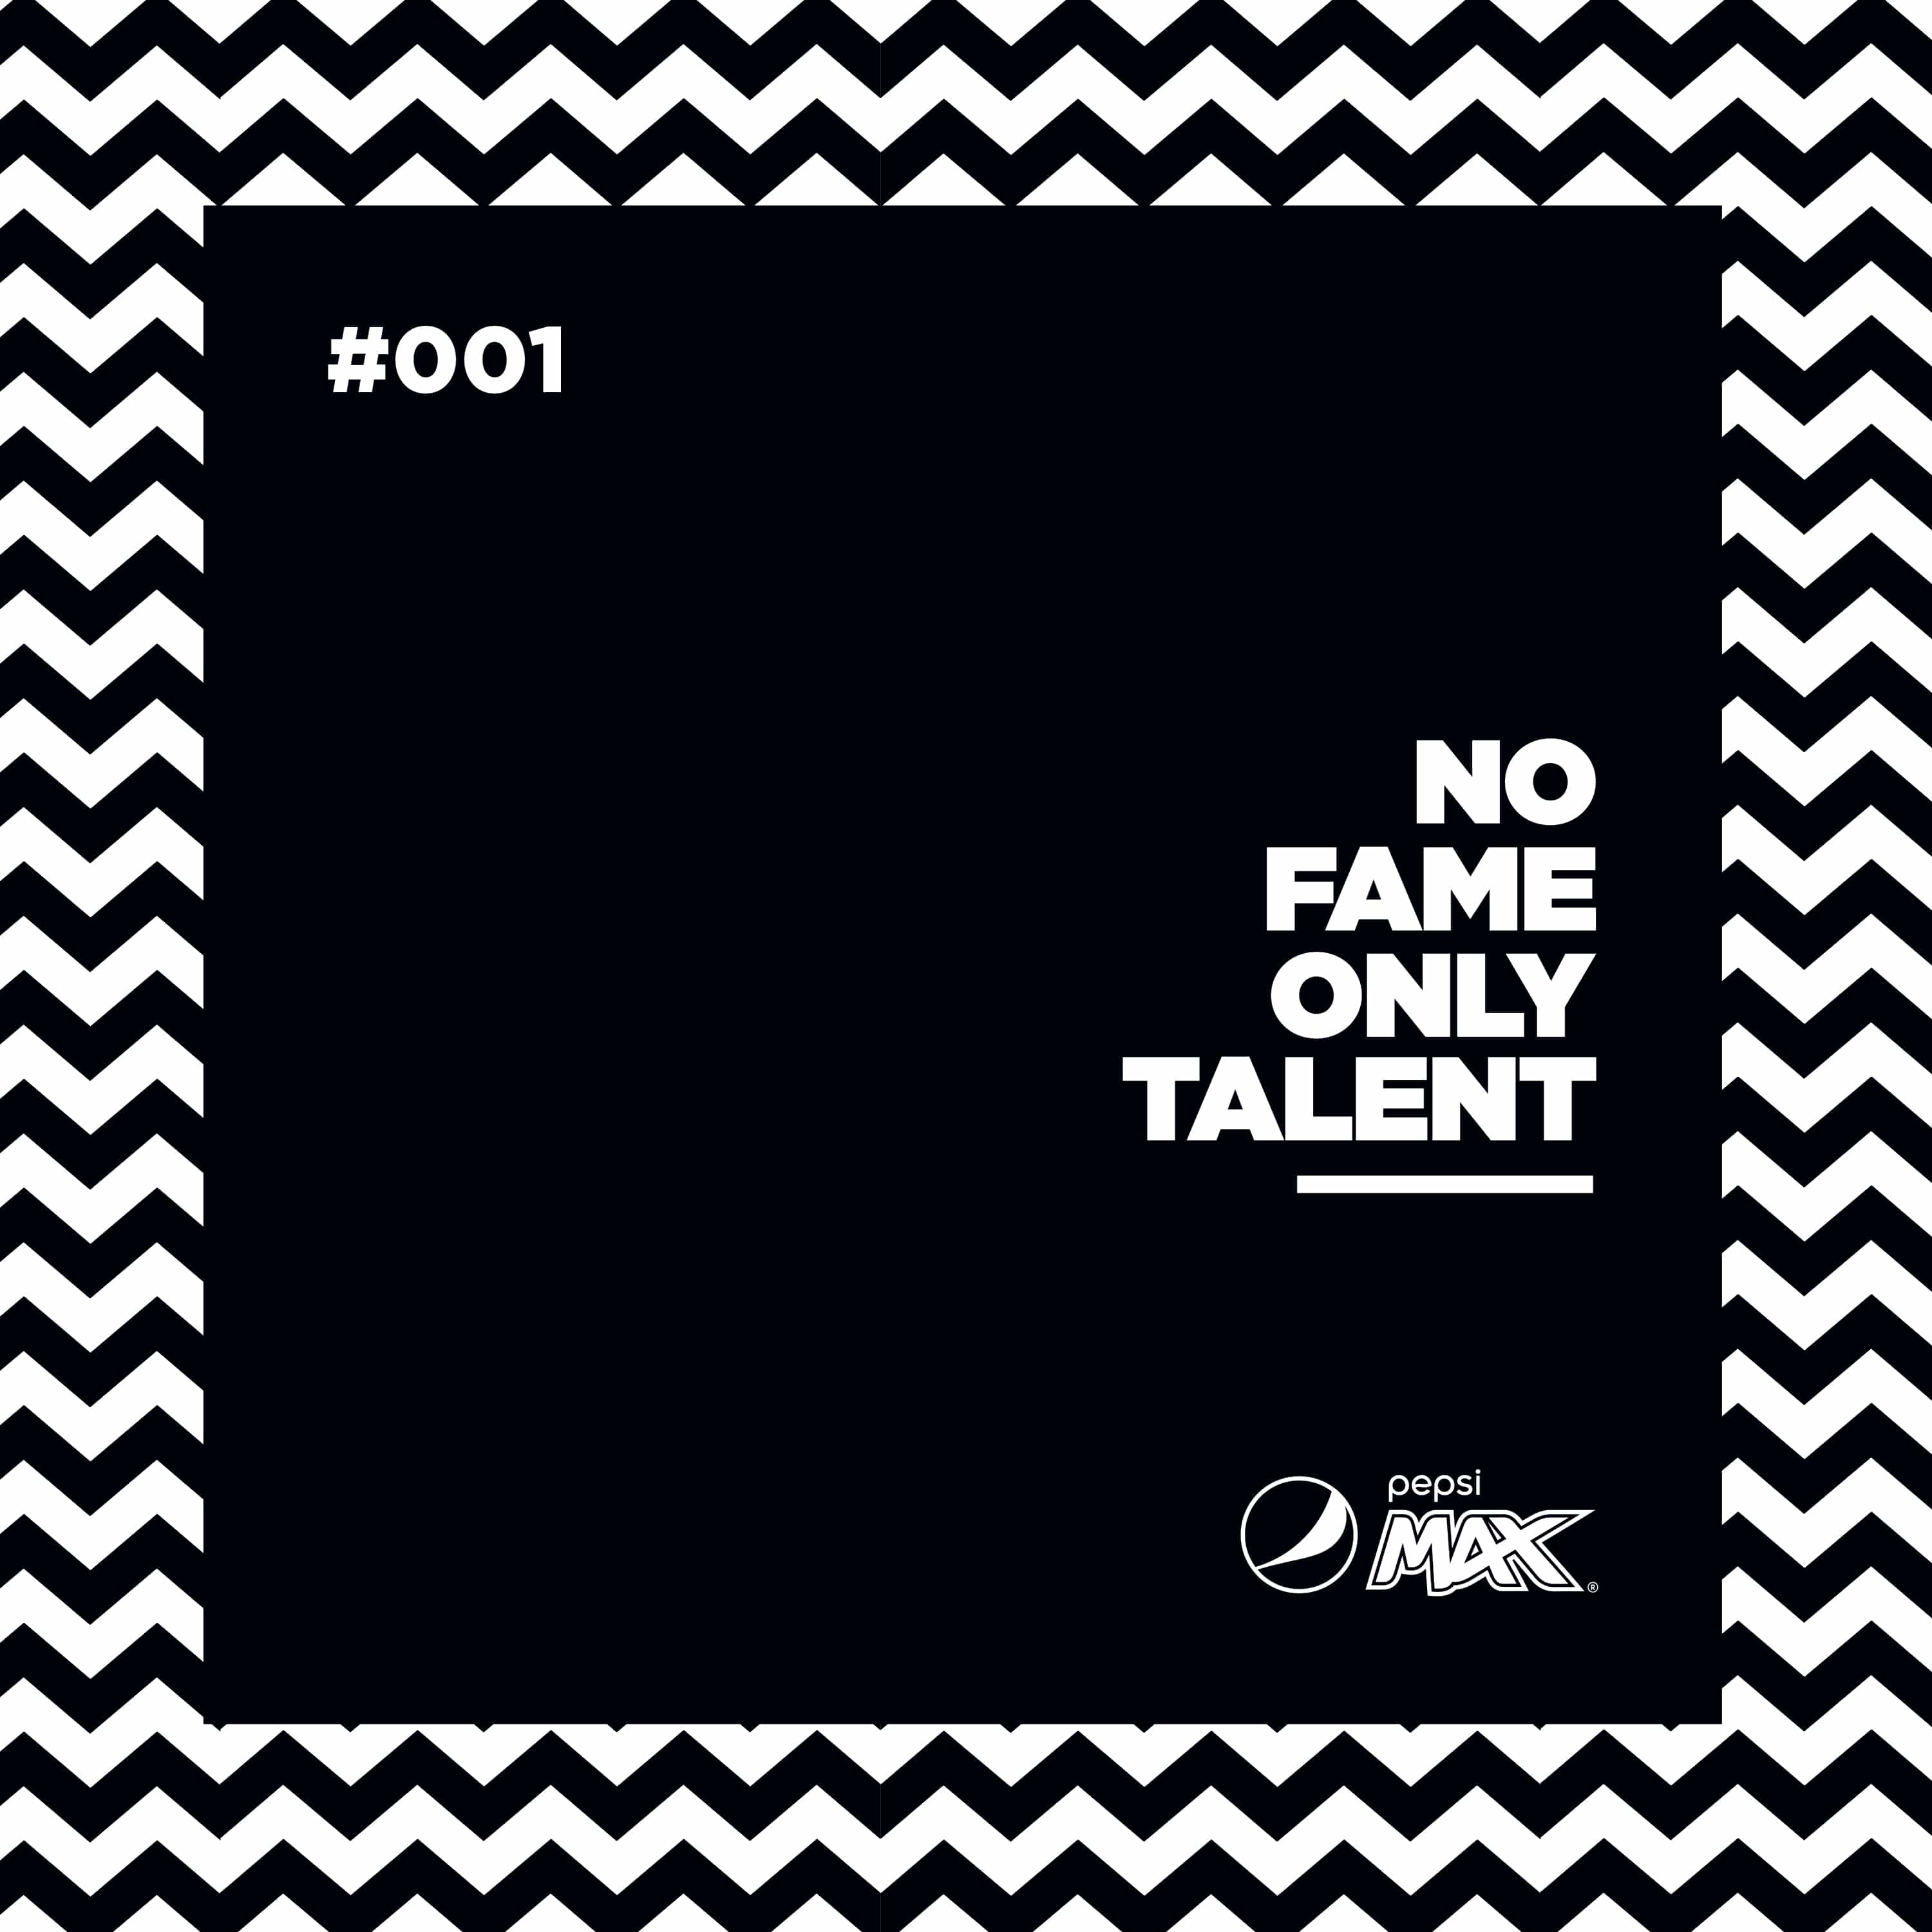 No Fame Only Talent: TooManyLeftHands sparked new label